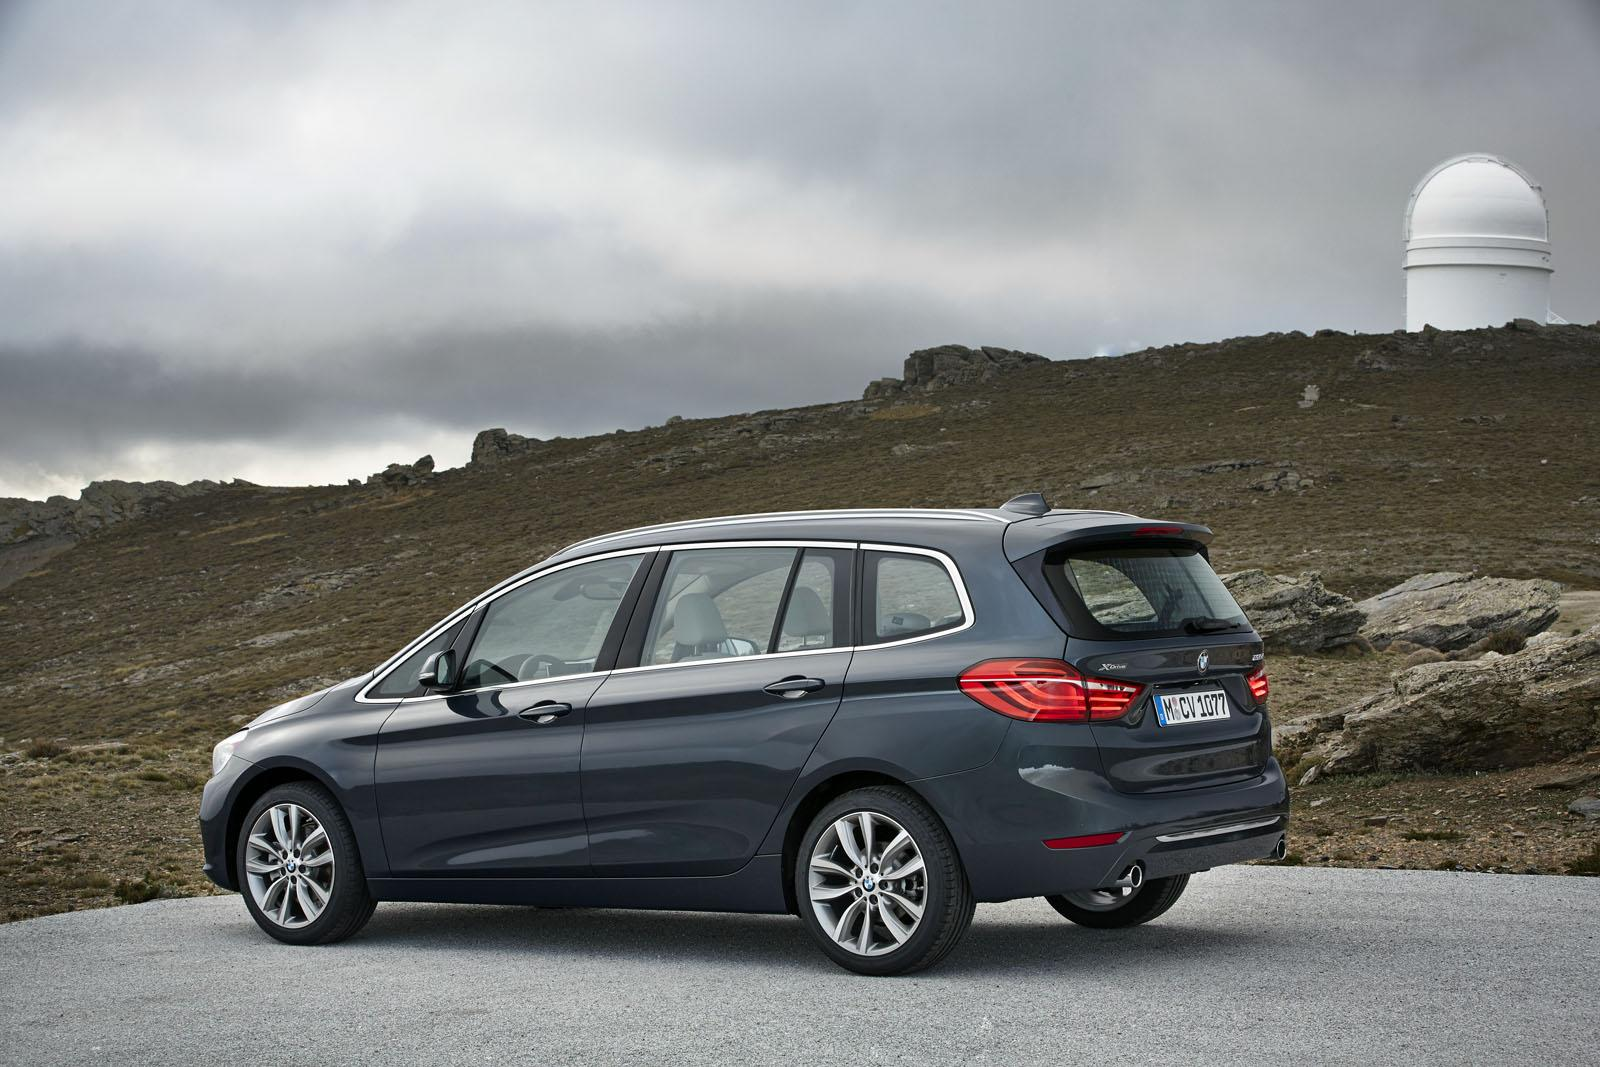 bmw cars news 7 seats bmw 2 series gran tourer unveiled. Black Bedroom Furniture Sets. Home Design Ideas